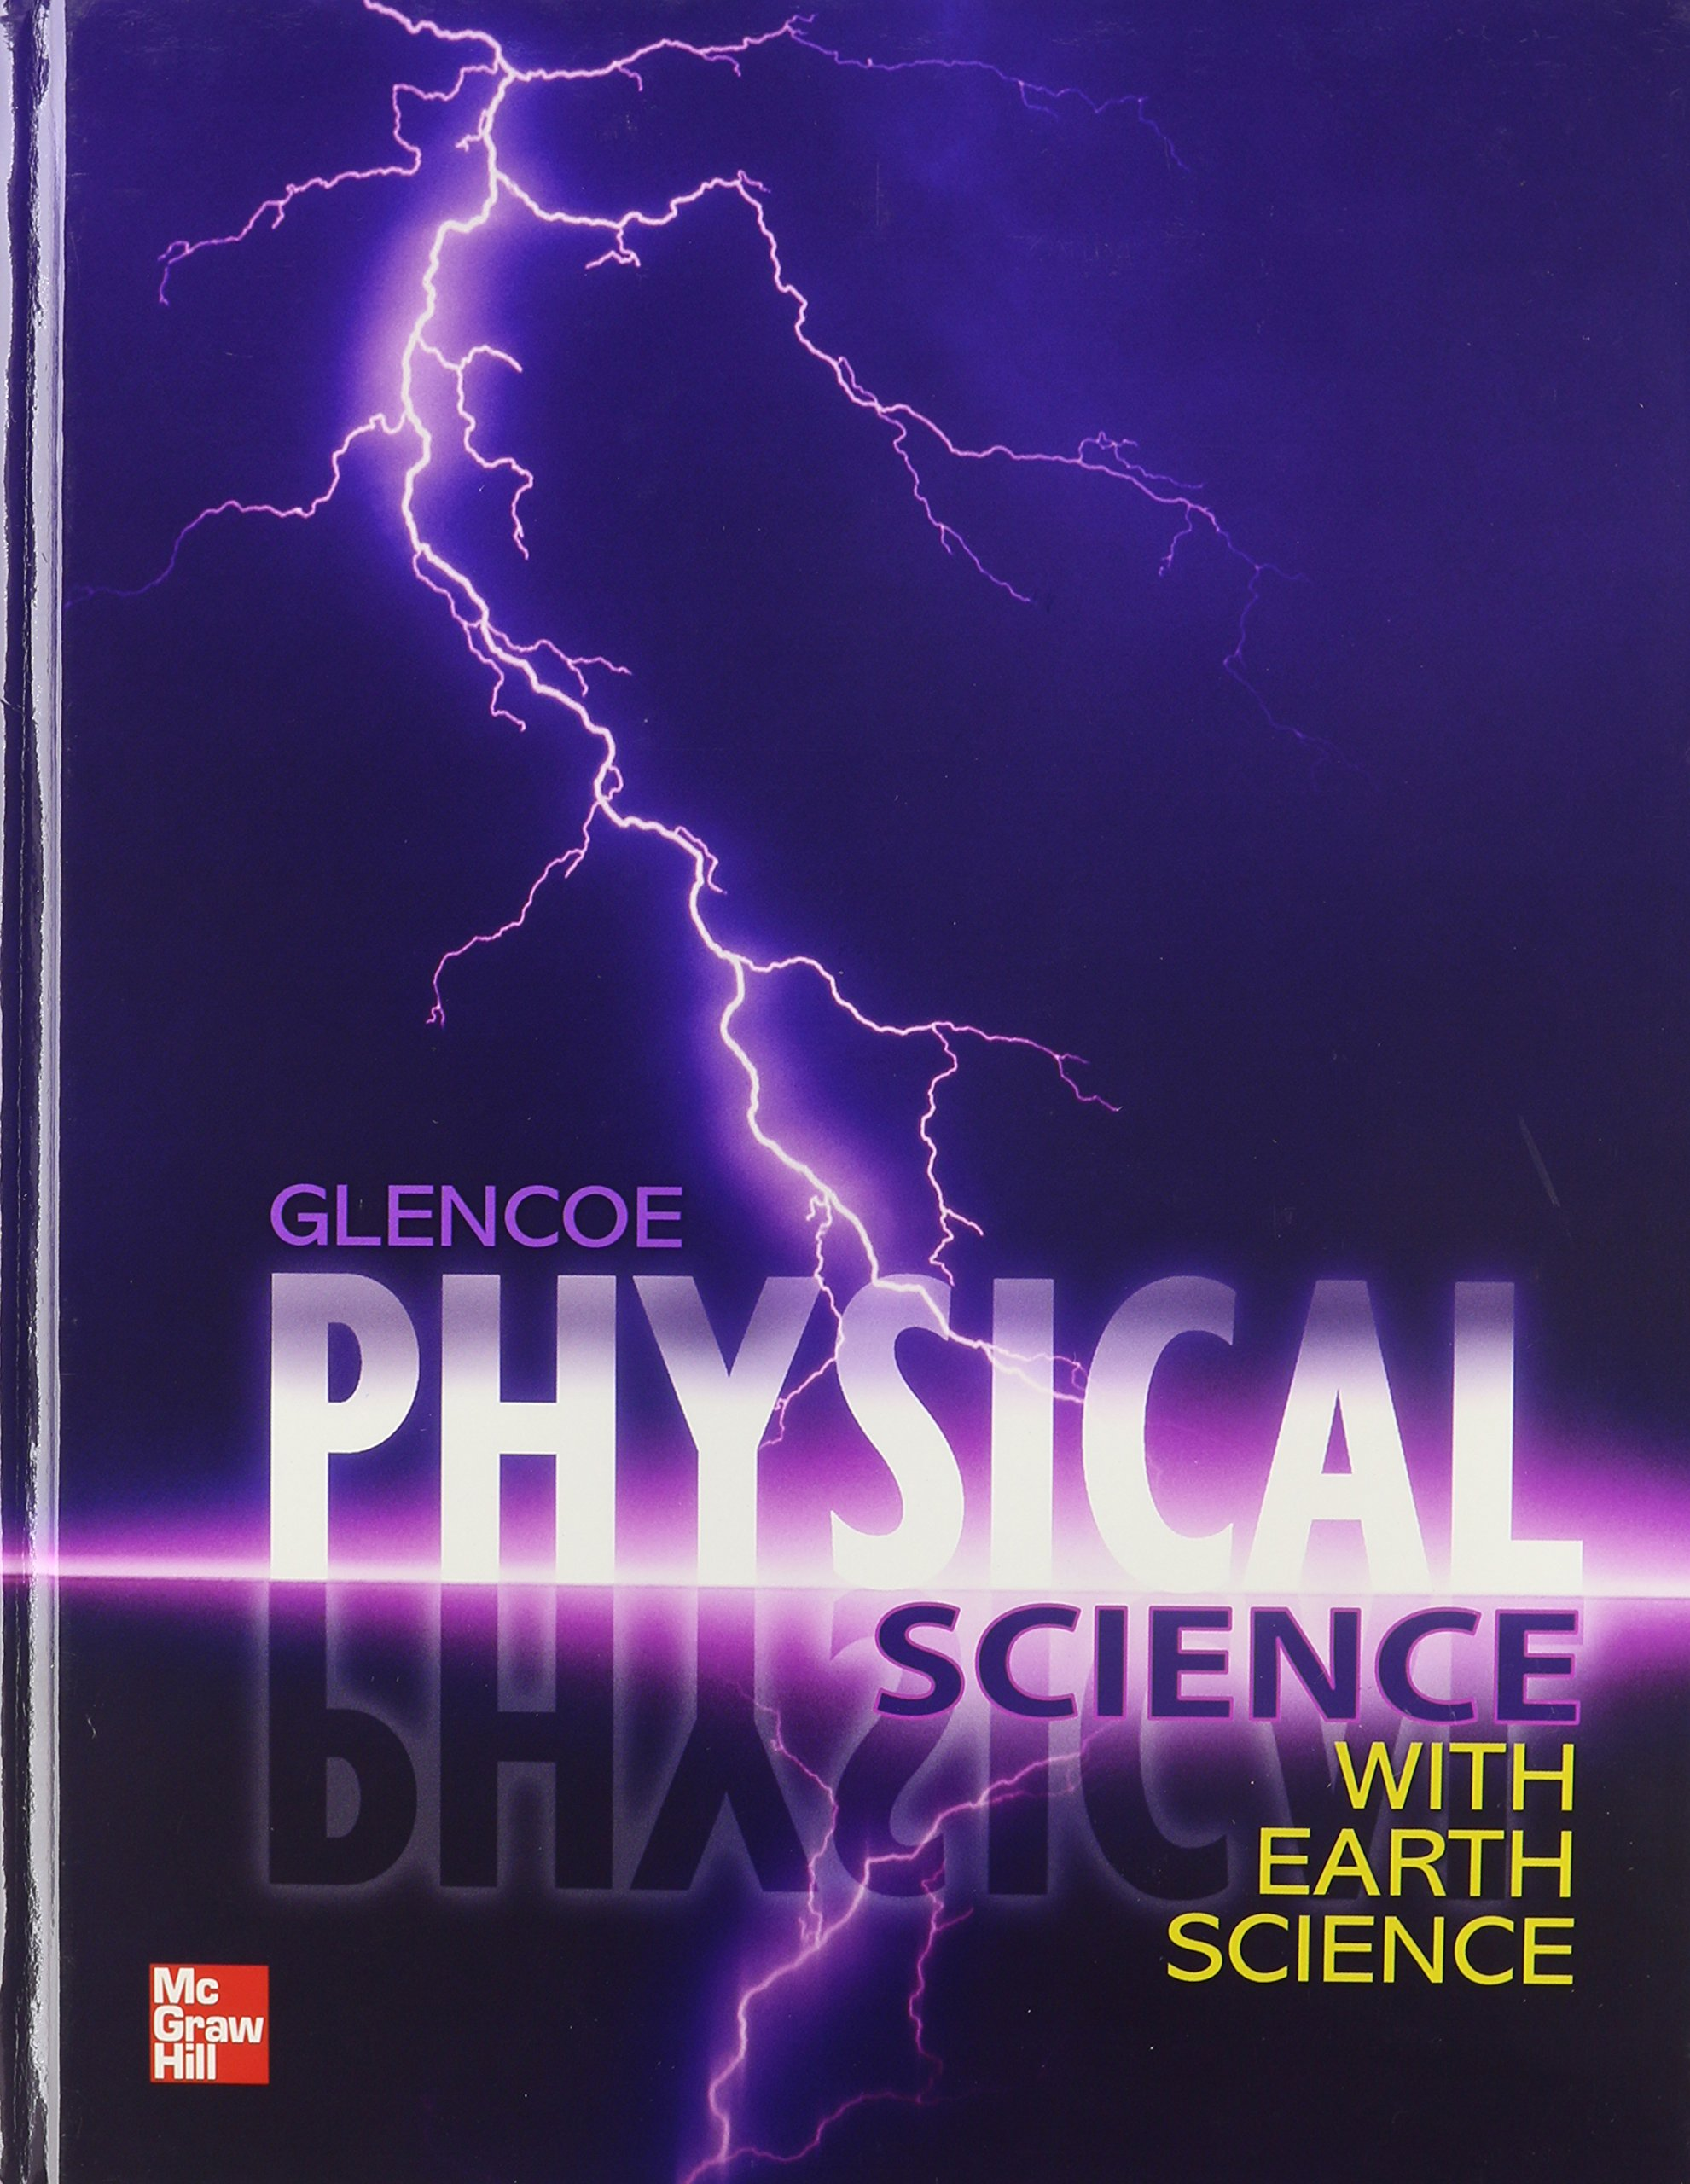 worksheet Glencoe Physical Science Worksheets buy glencoe physical science with earth book online at low prices in india science